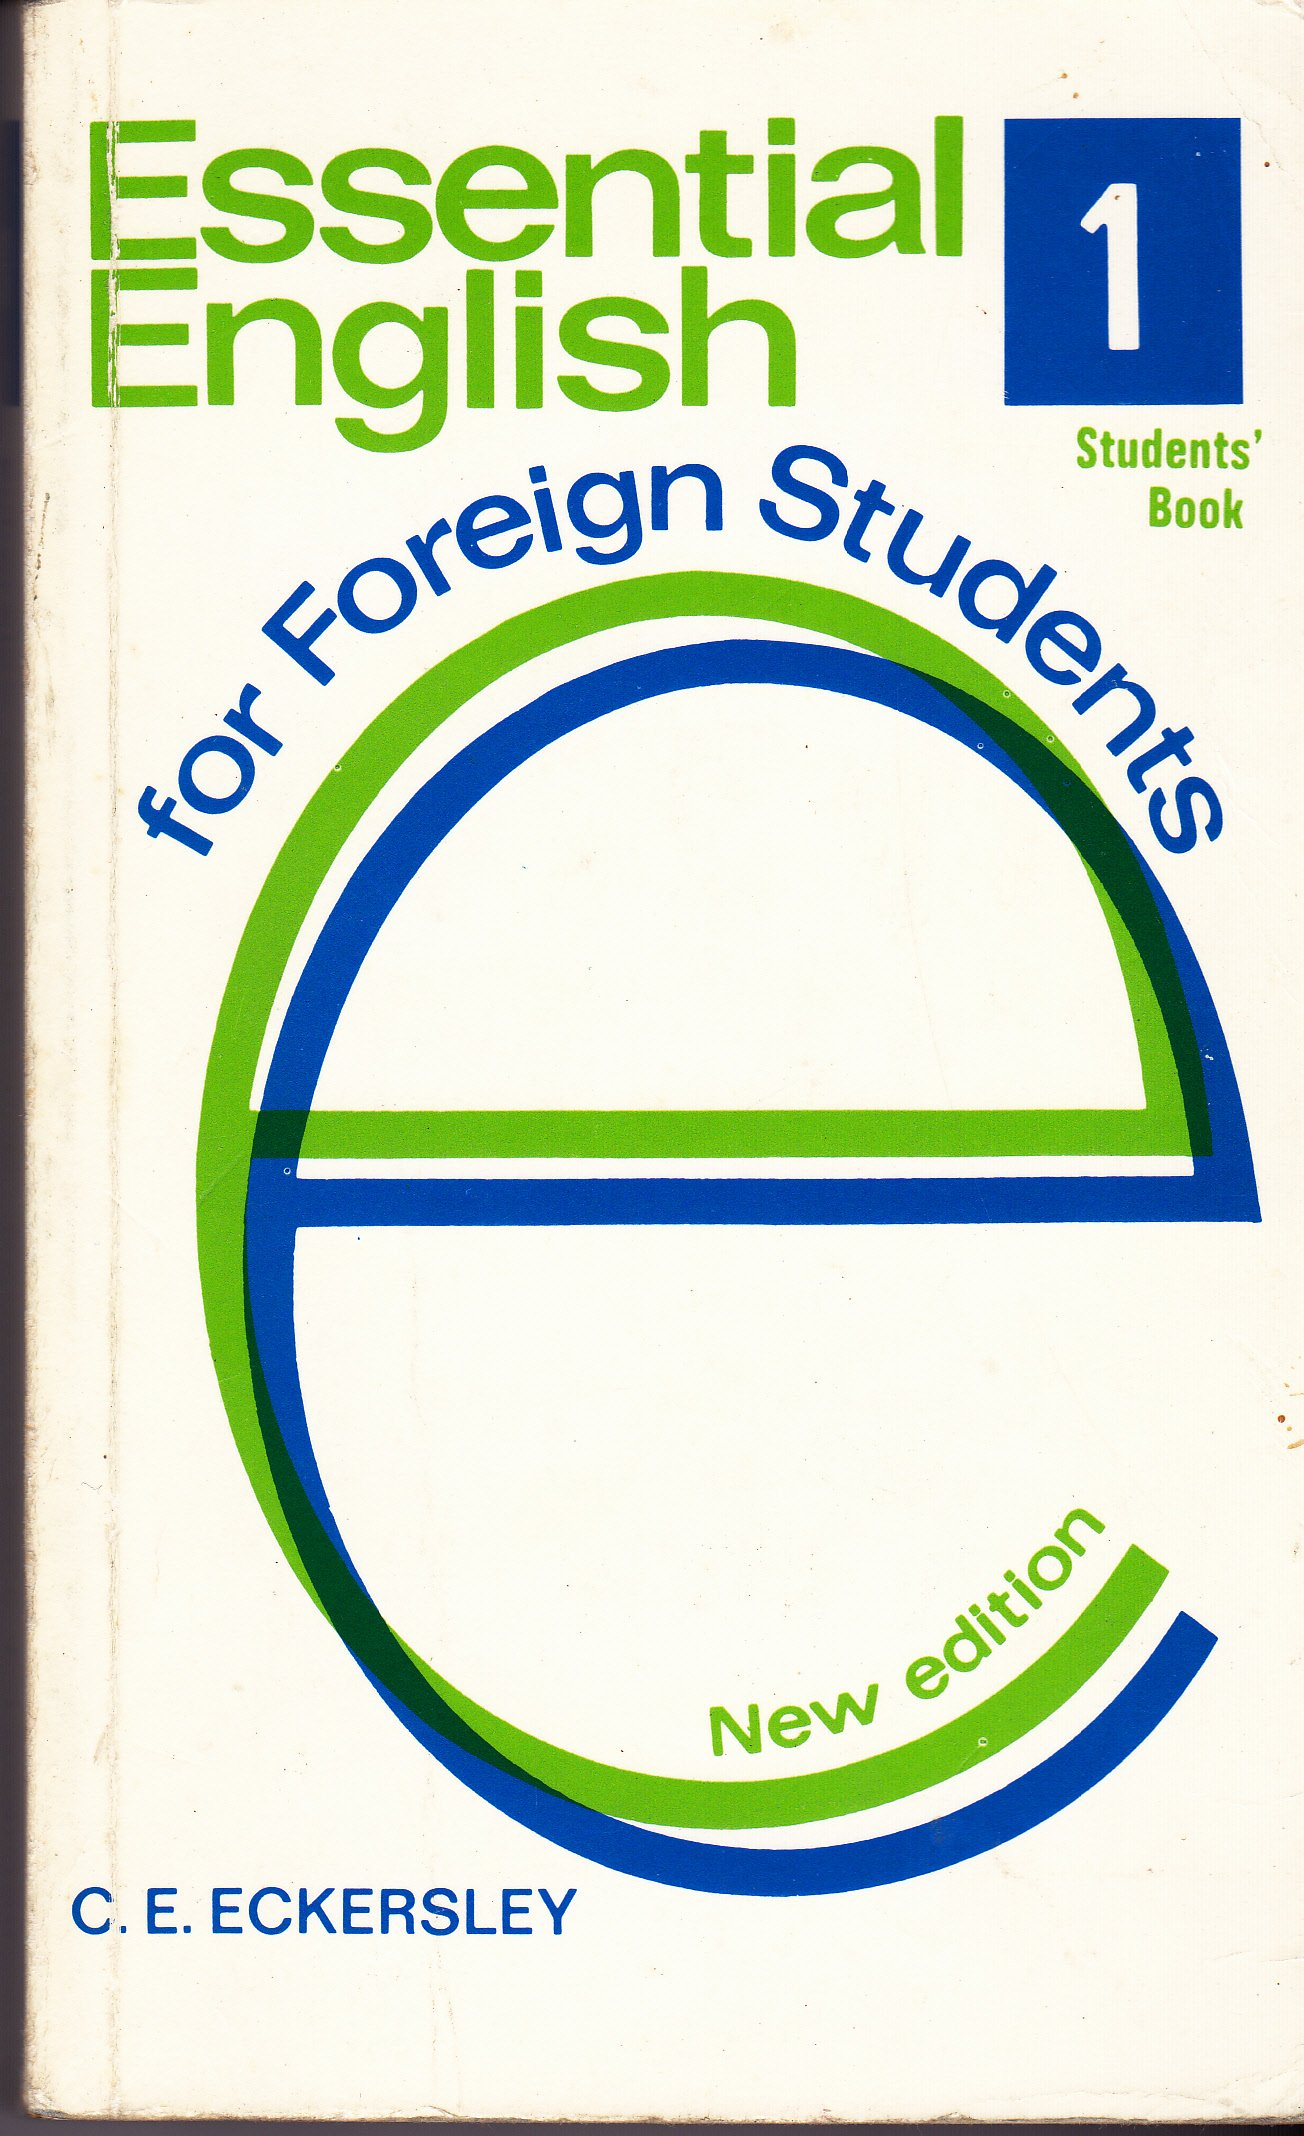 Eckersley c. E. Essential english for foreign students. Book 4 [pdf.